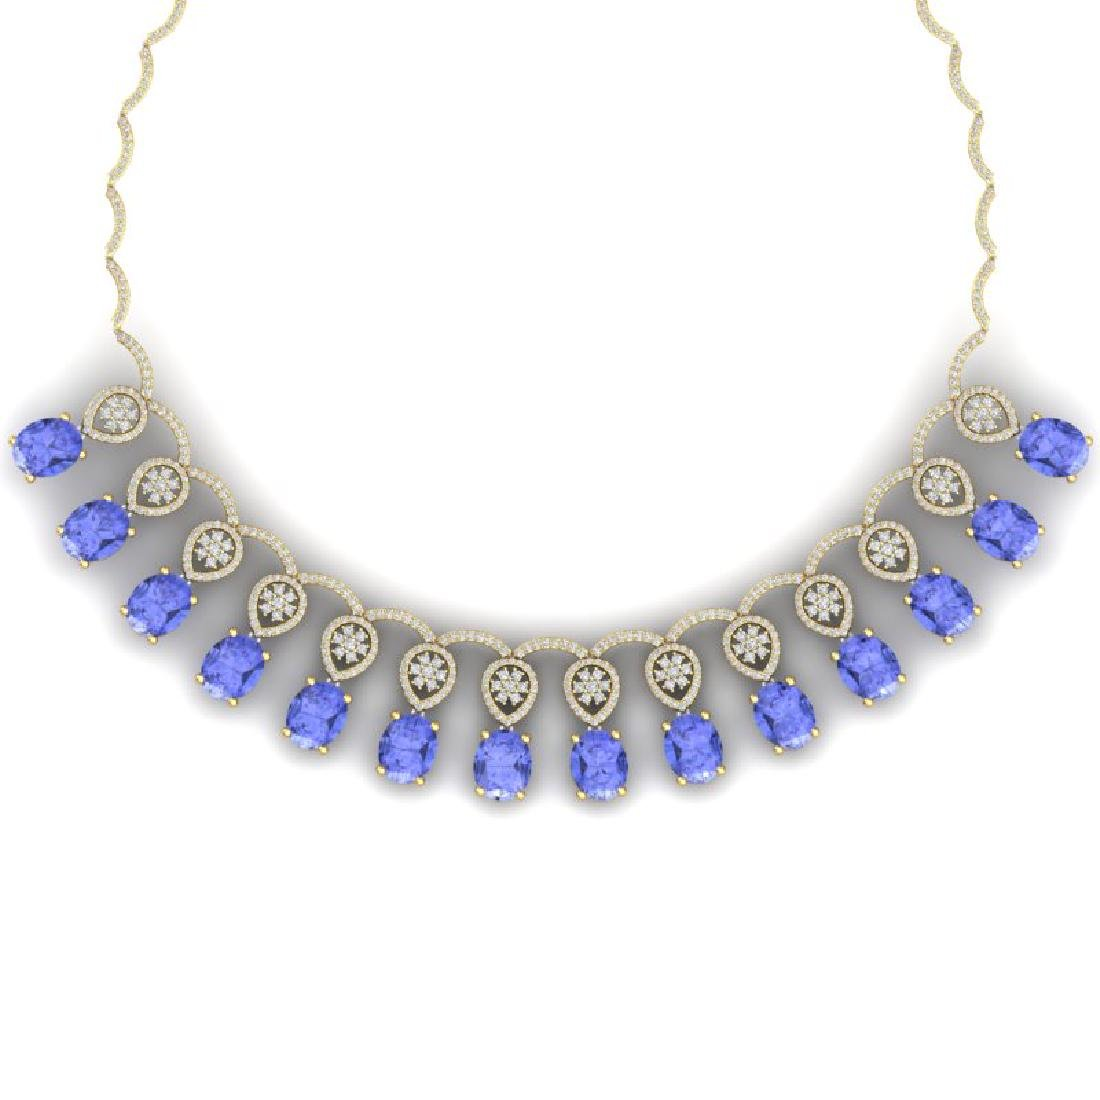 45.56 CTW Royalty Tanzanite & VS Diamond Necklace 18K